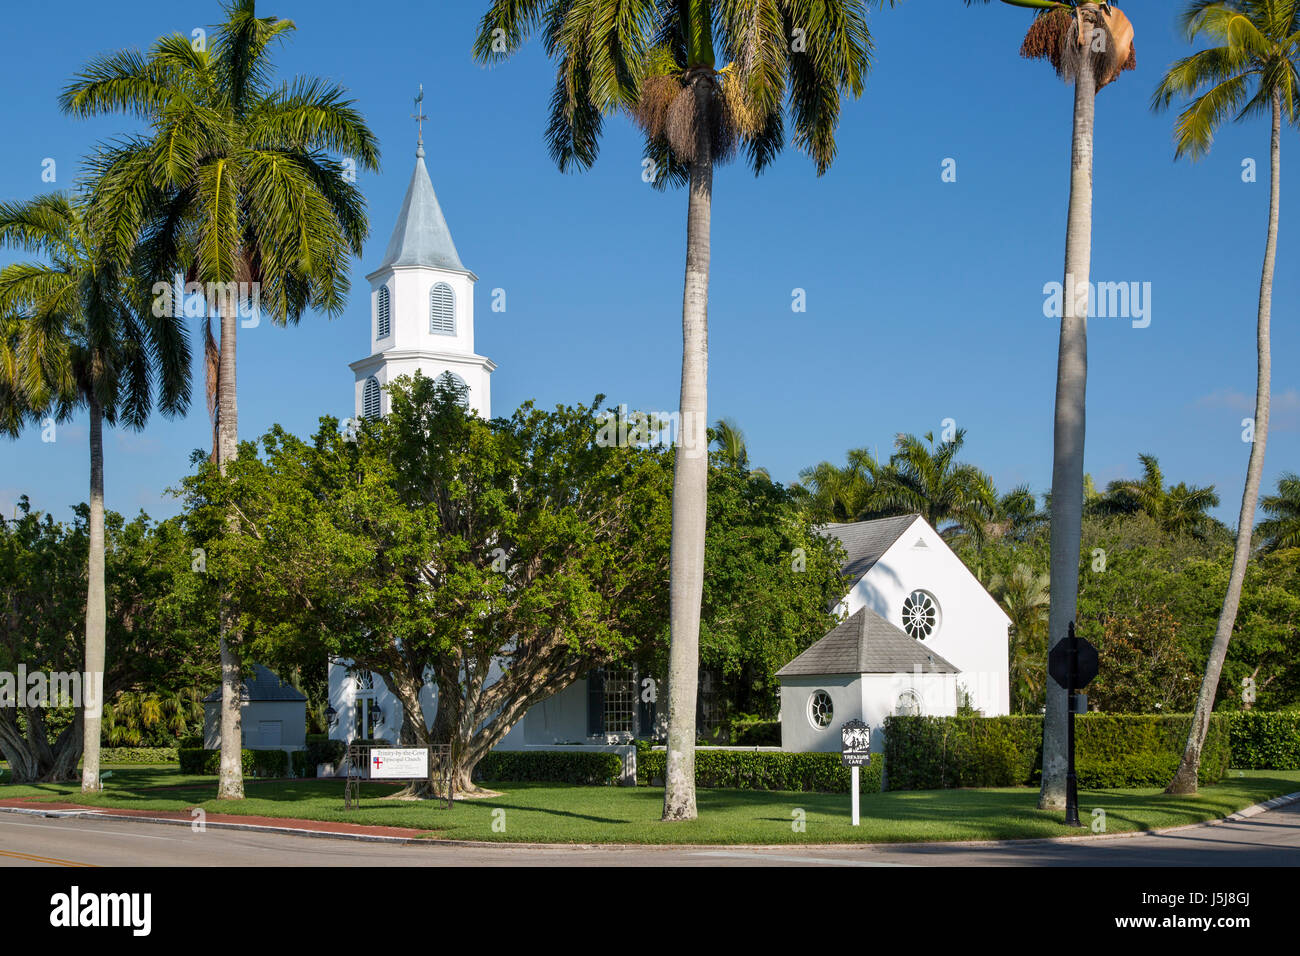 Trinity-by-the-Cove Episcopal Church, Naples, Florida, USA - Stock Image